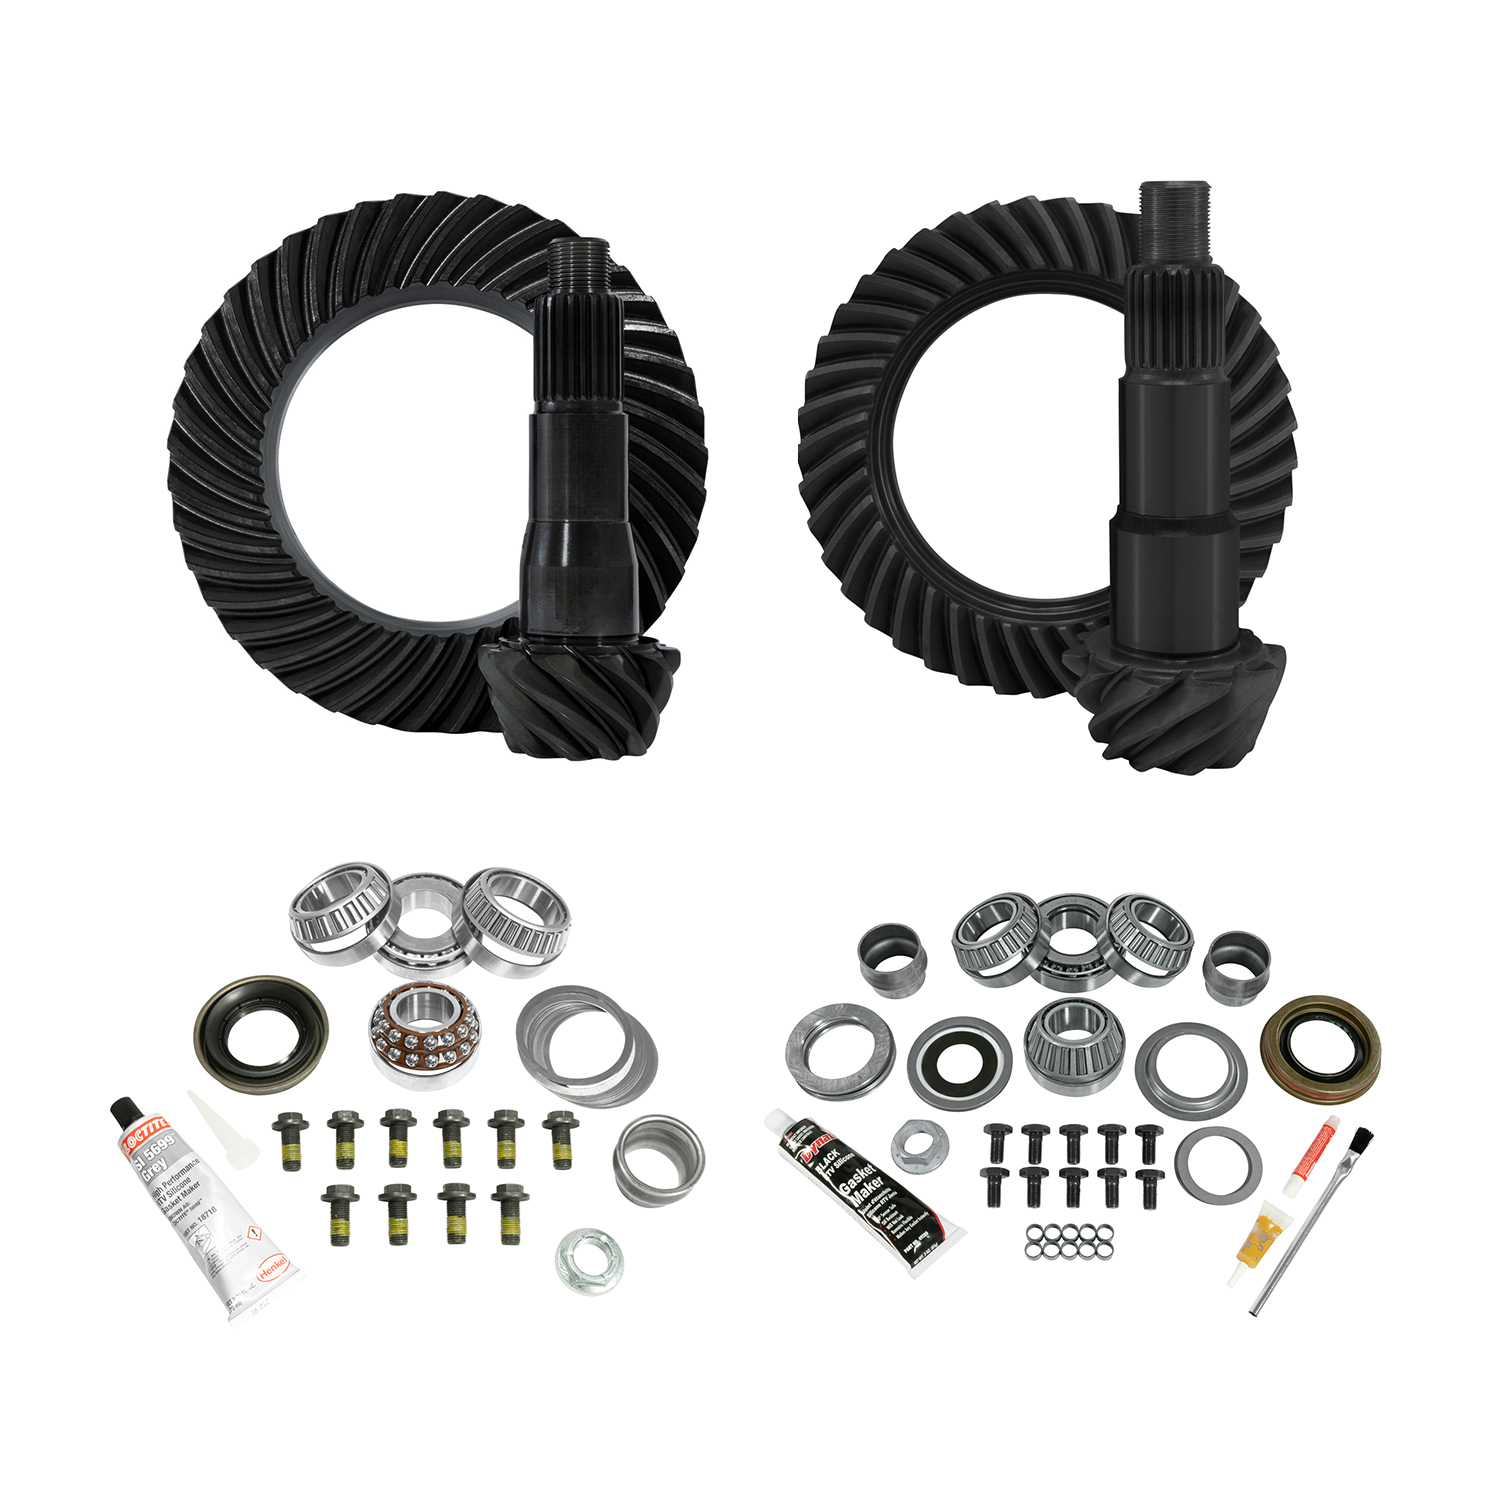 YGK072 - Yukon Complete Gear and Kit Pakage for JL Jeep Non-Rubicon, D35 Rear & D30 Front, 4:11 Gear Ratio